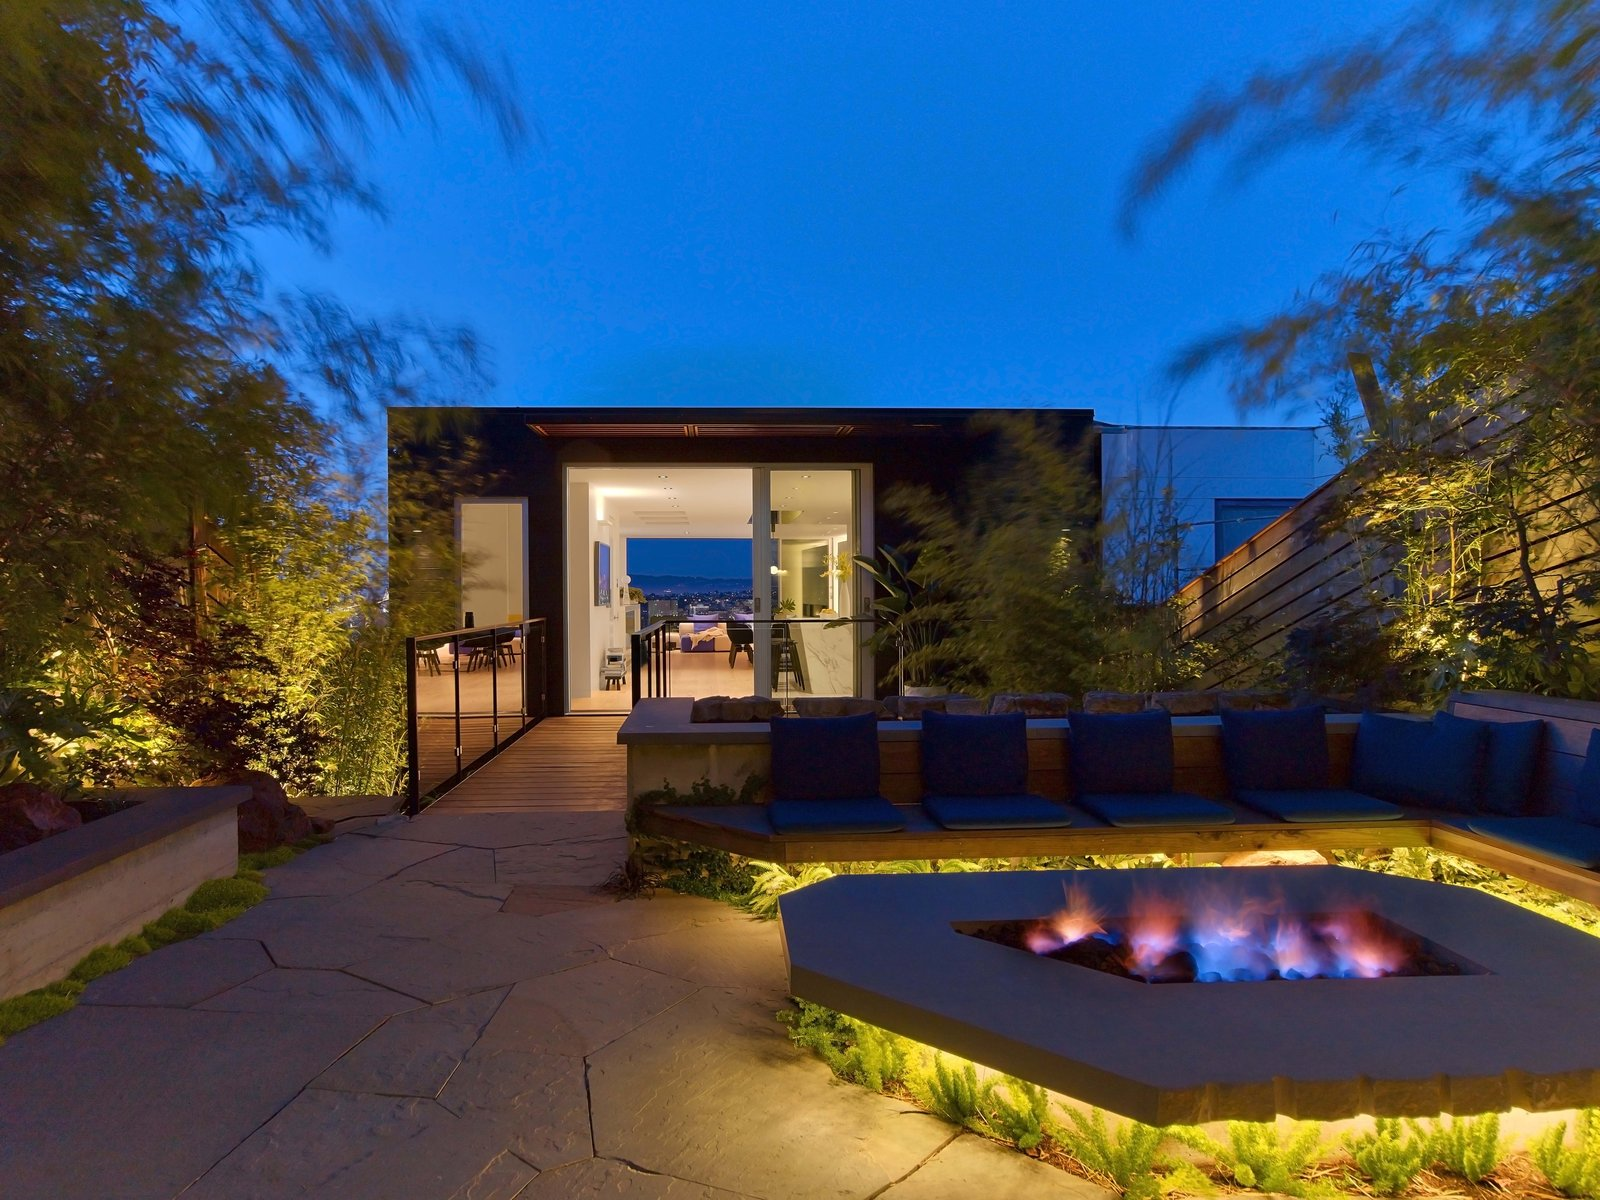 Tagged: Outdoor, Back Yard, Trees, Shrubs, Stone Patio, Porch, Deck, Wood Fences, Wall, Landscape Lighting, and Horizontal Fences, Wall.  Glen Park Residence by CCS Architecture